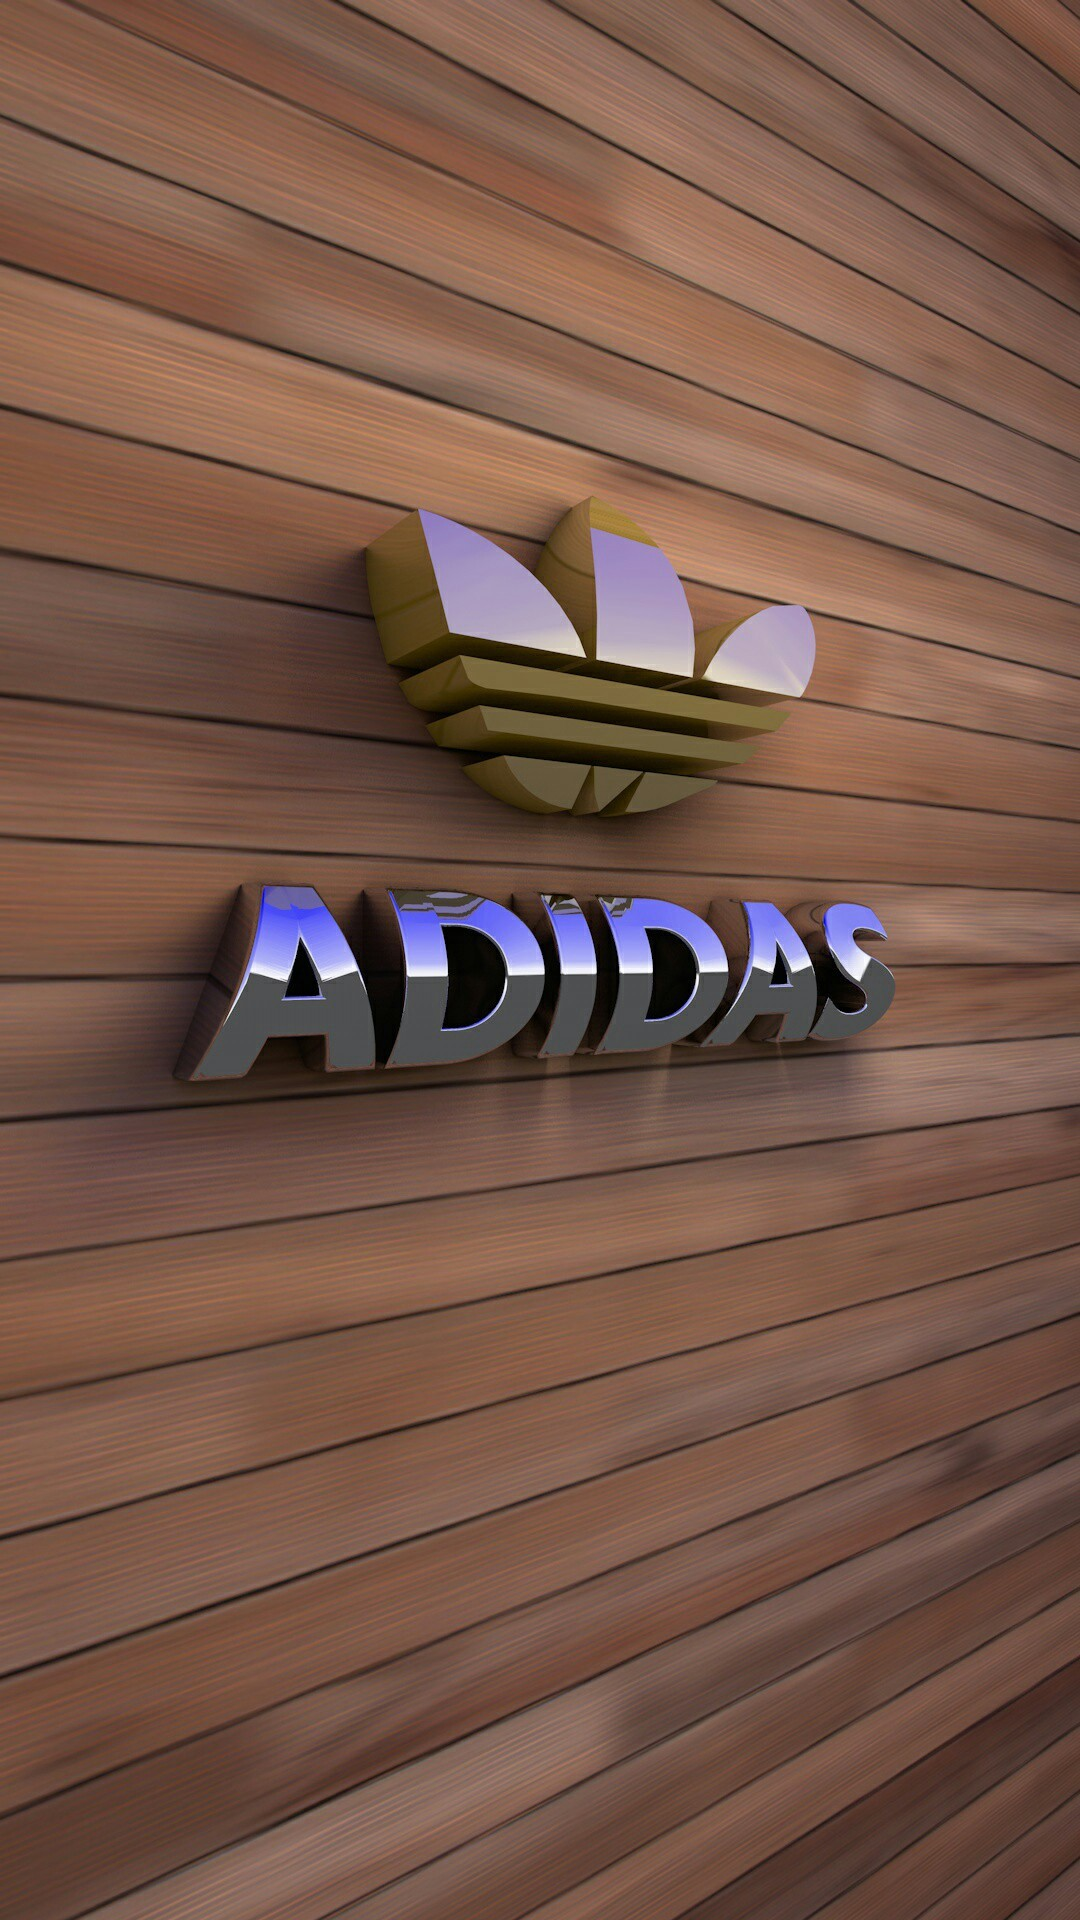 Cool Wallpaper Adidas Iphone 6s Plus - 753280-download-free-adidas-logo-wallpaper-2018-1080x1920-for-iphone  2018_638037      .jpg